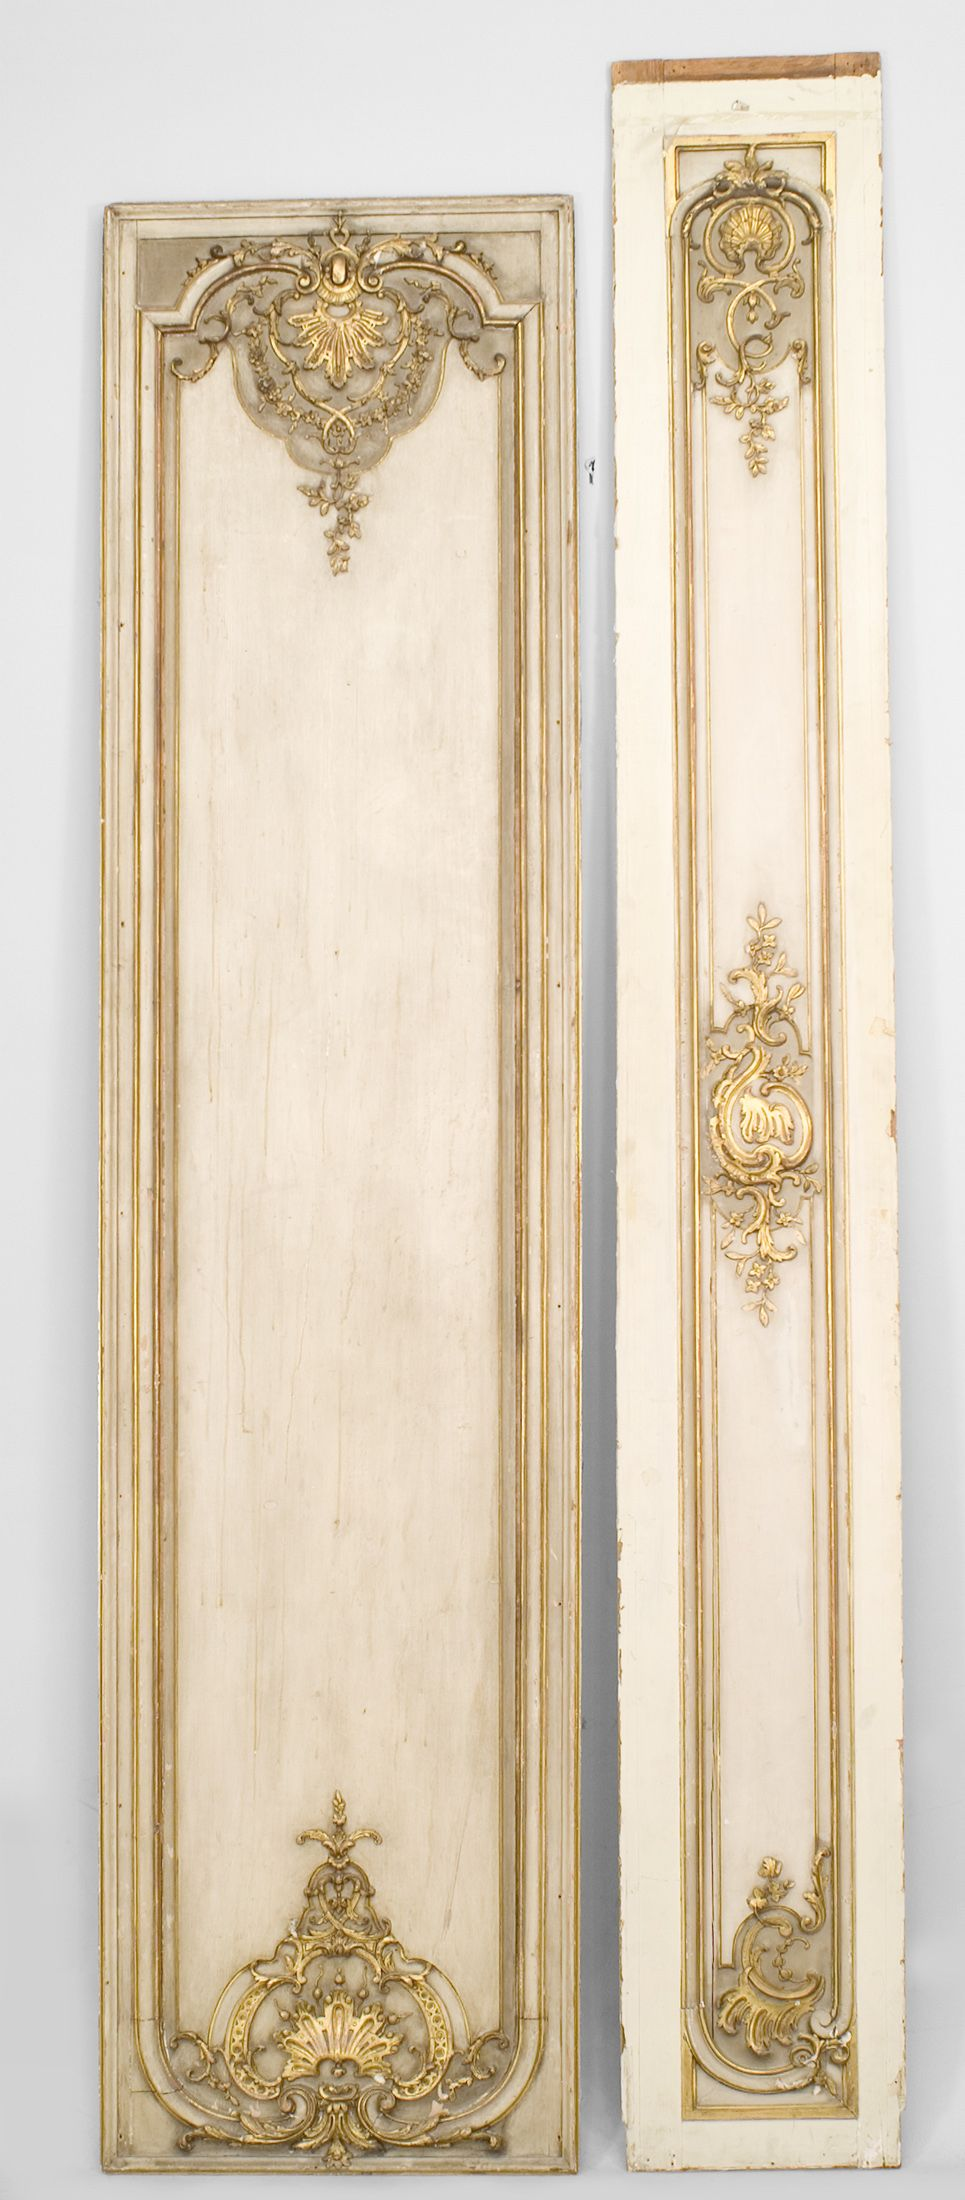 French Louis Xv Gold And White Panels Painted Paneling Gold Paint French Decor